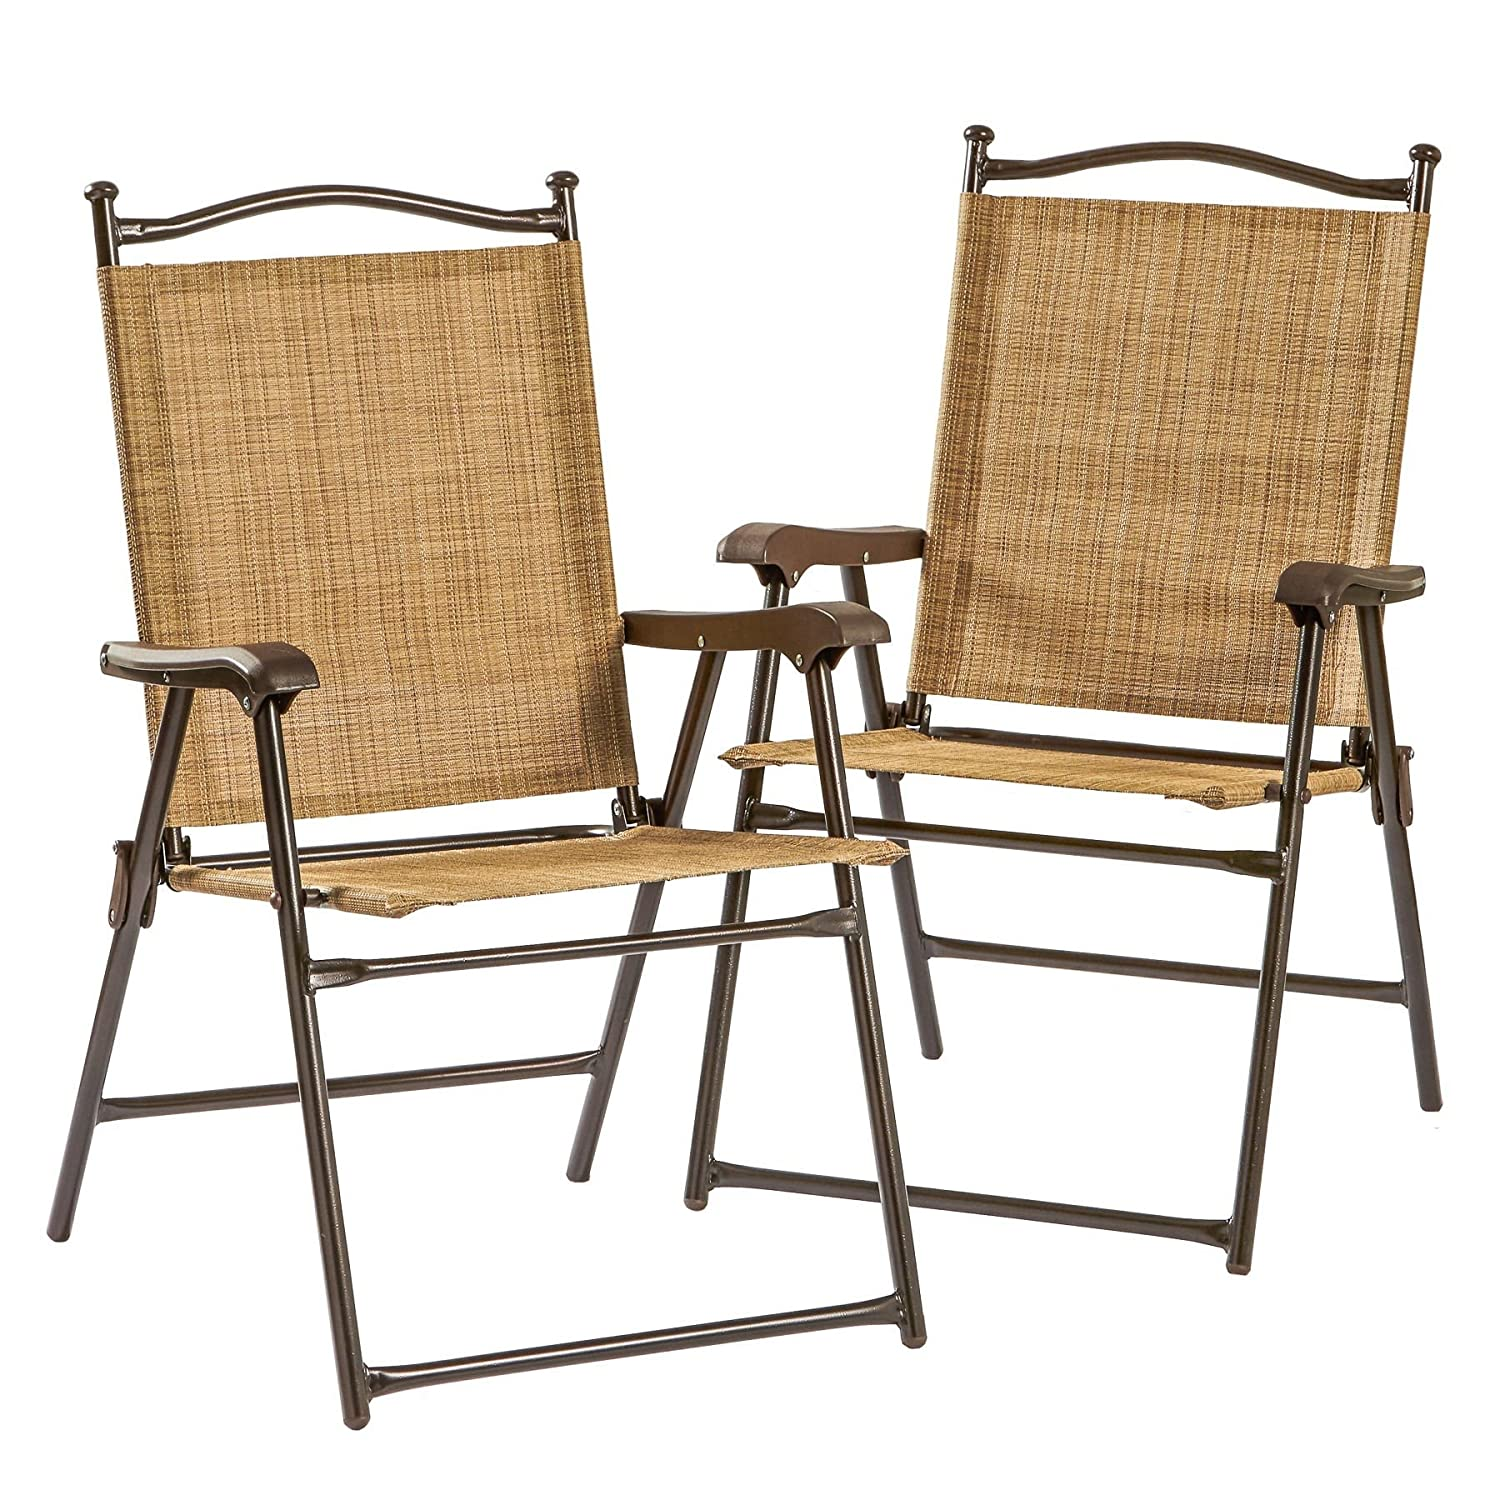 Amazon Folding UV resistant Outdoor Chairs Set of 2